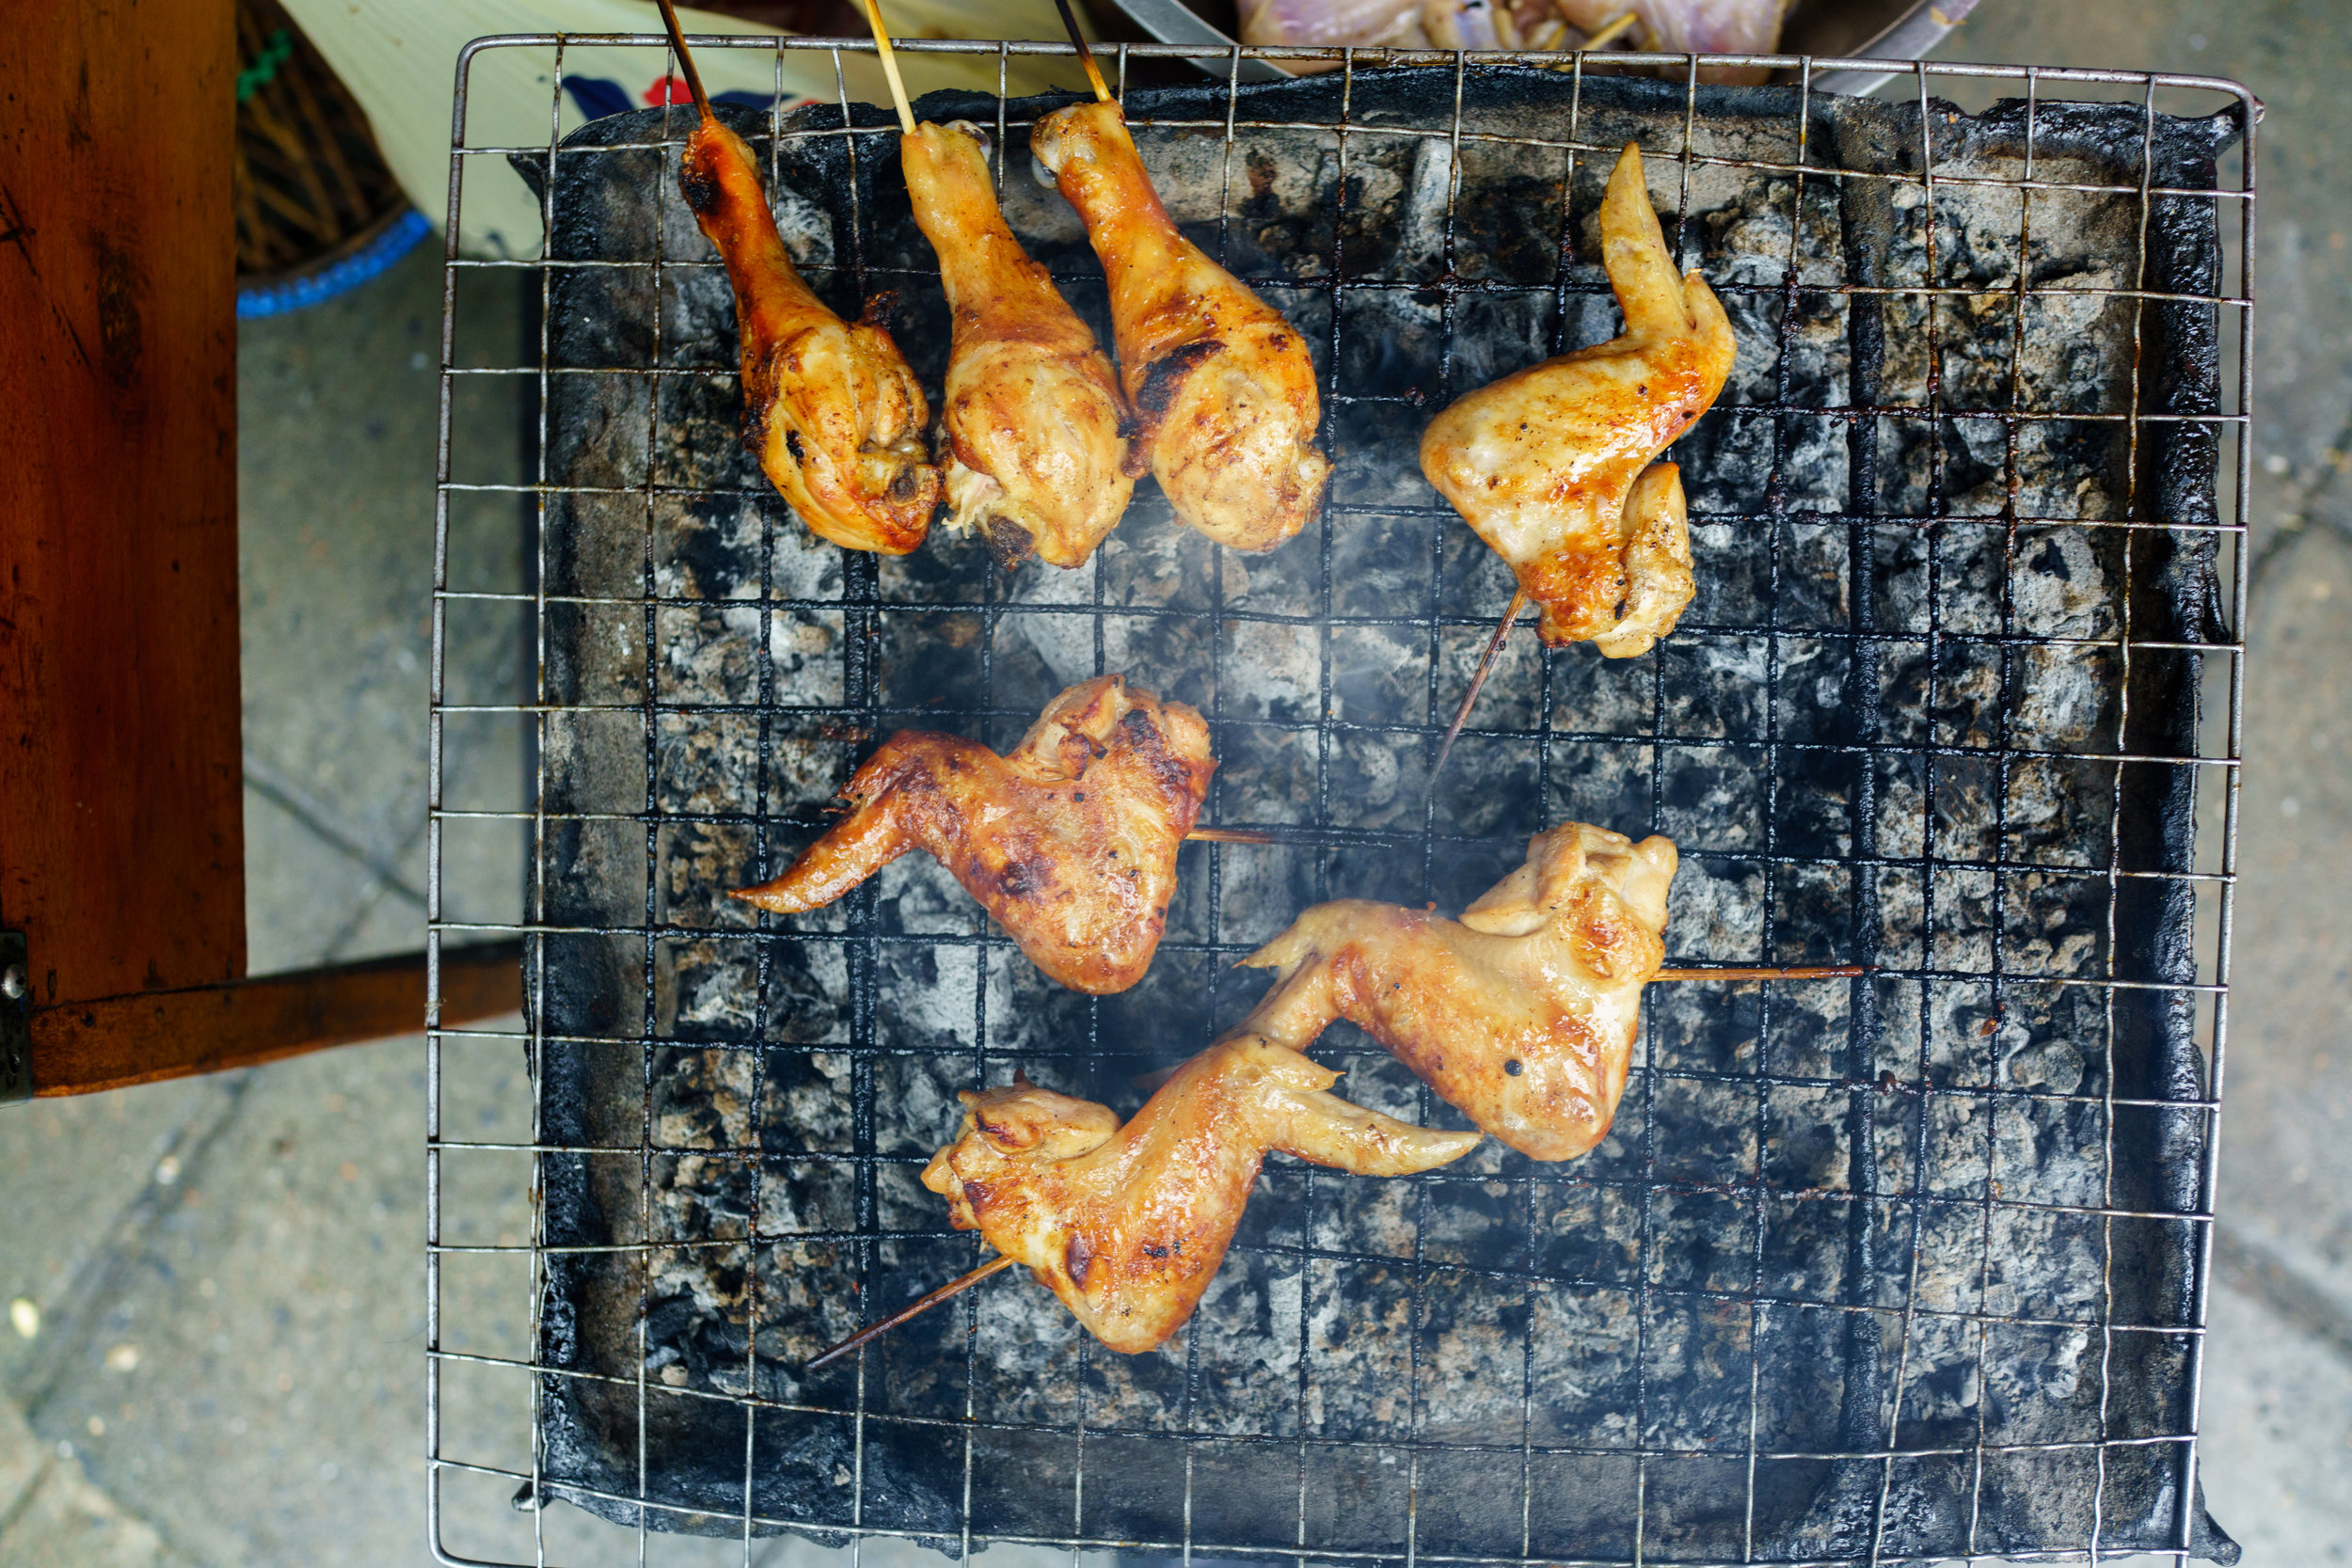 Gai yang  - chicken slow-roasting over charcoal